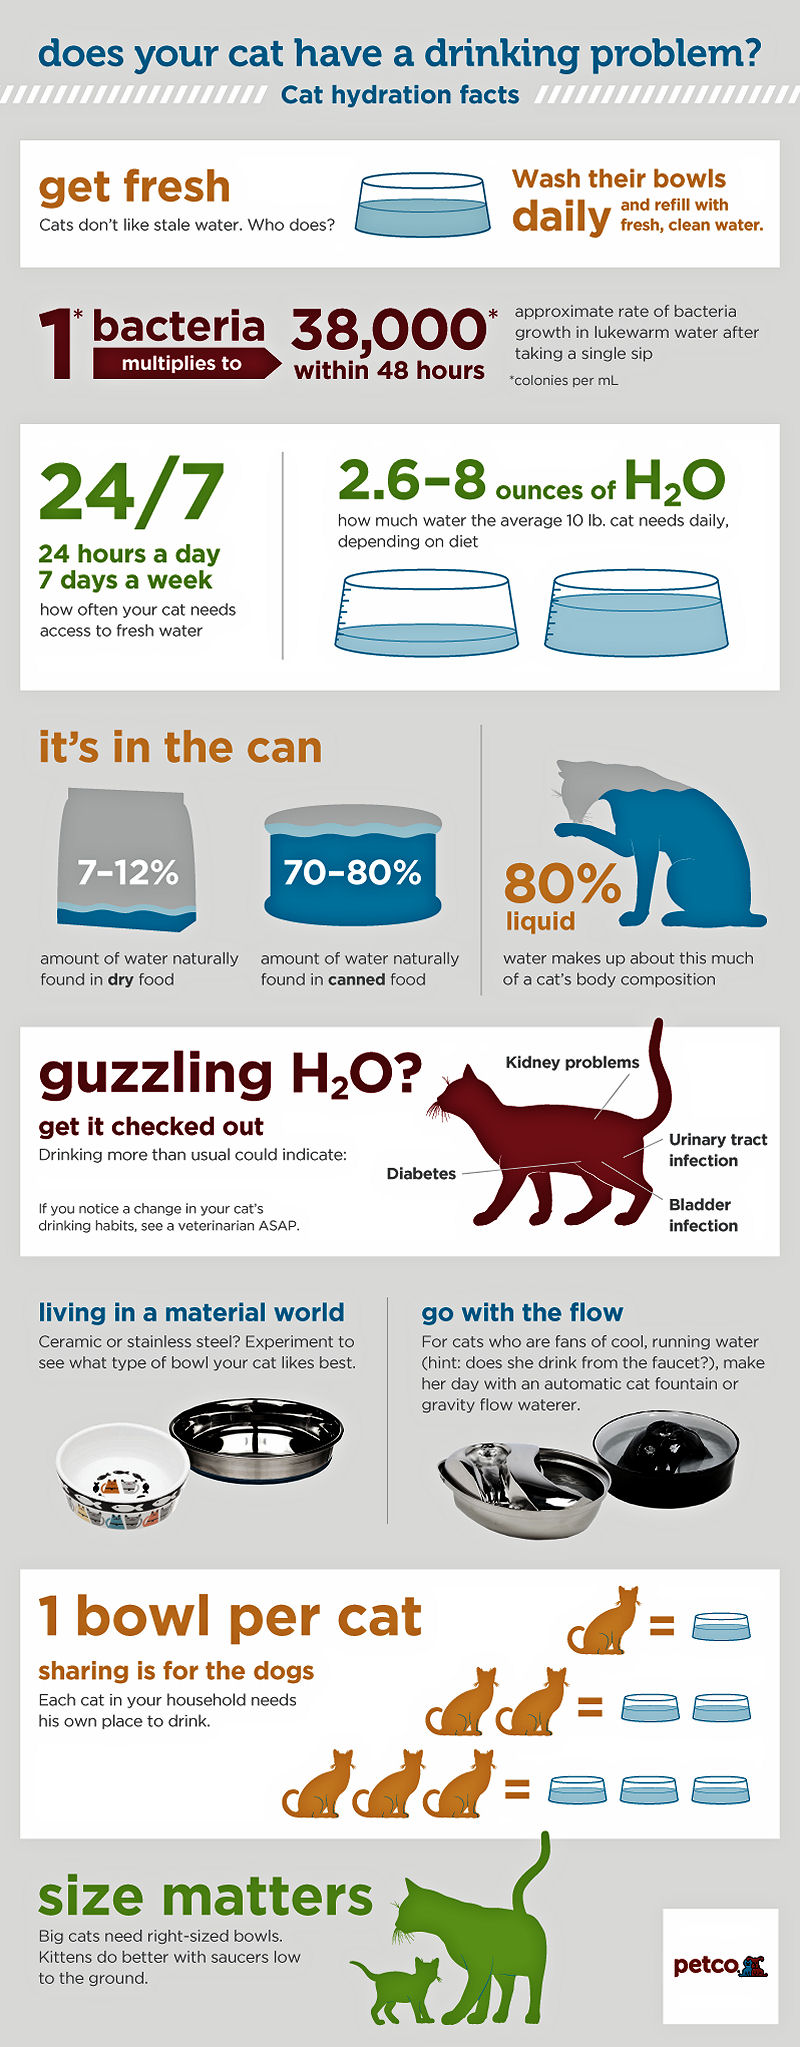 Dehydration can be Deadly for Cats - The Purrington Post